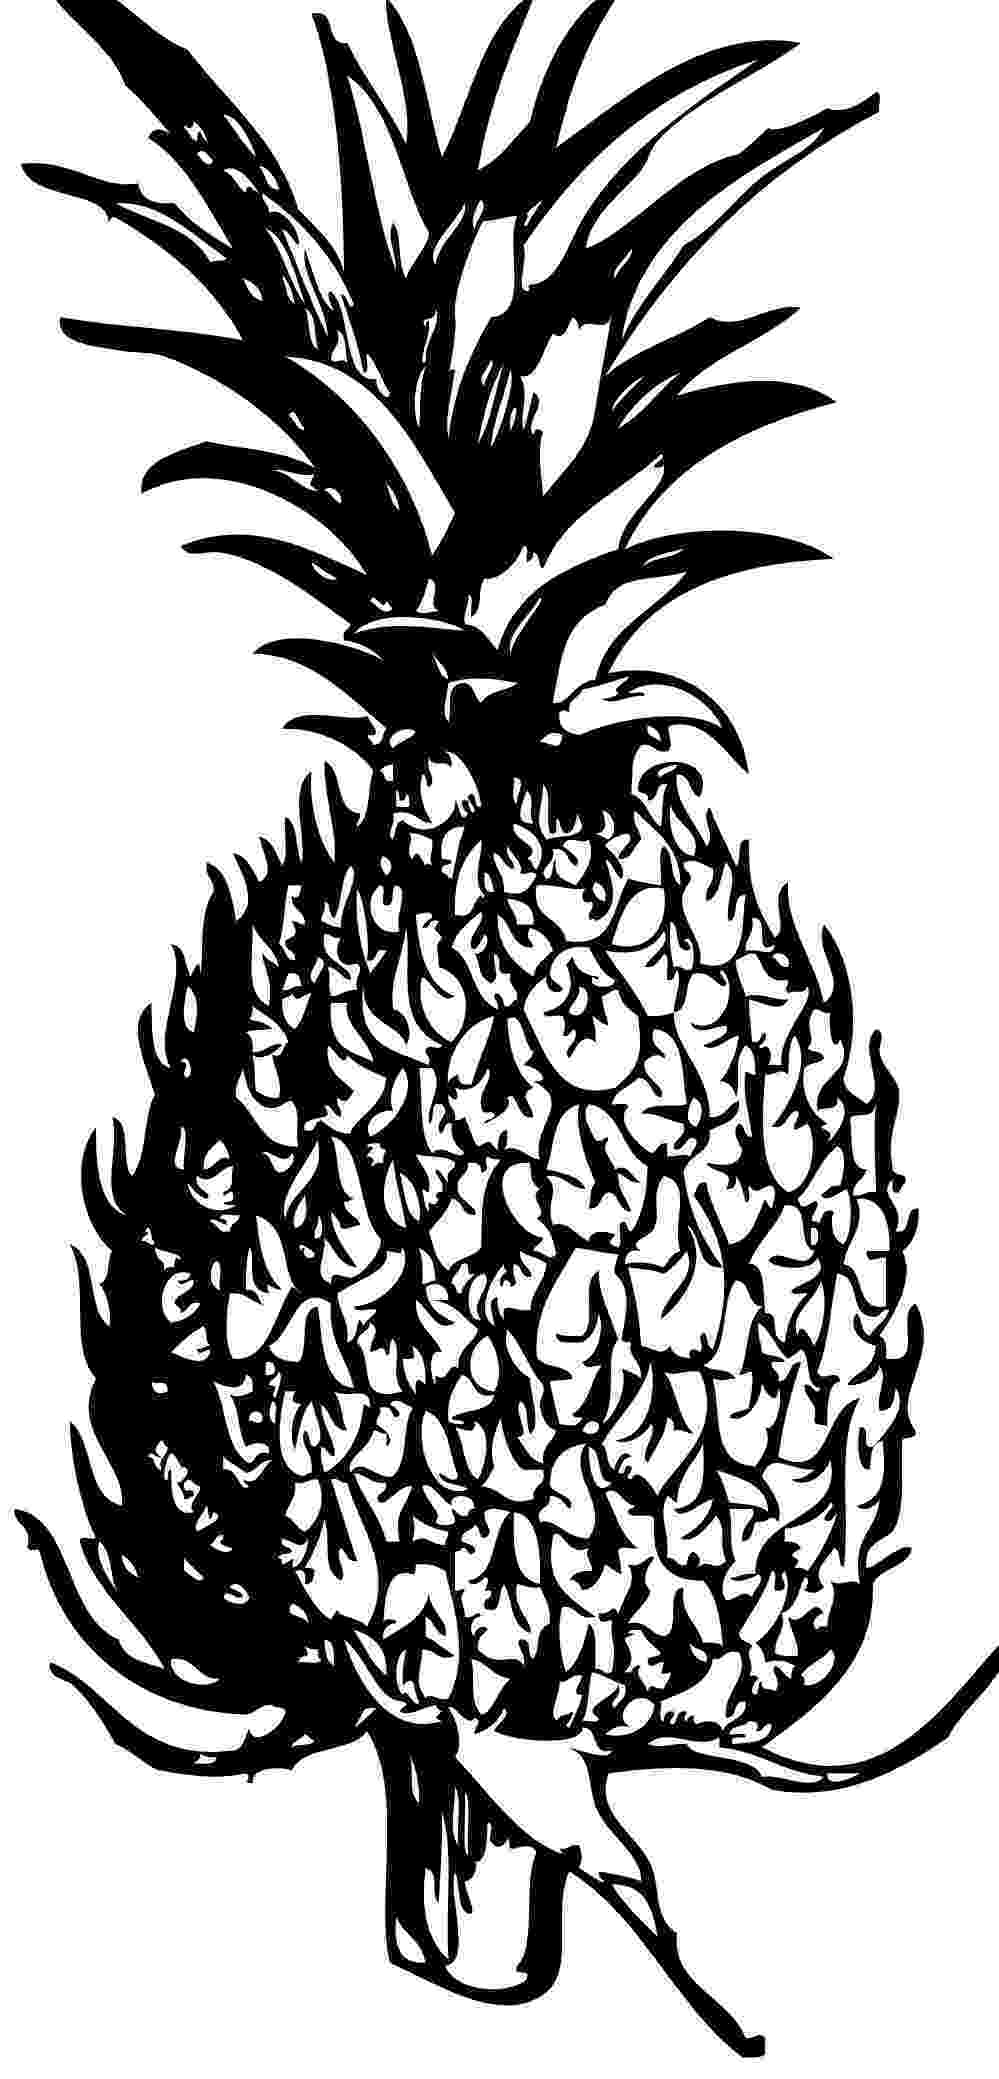 pineapple colouring picture free printable pineapple coloring pages for kids picture pineapple colouring